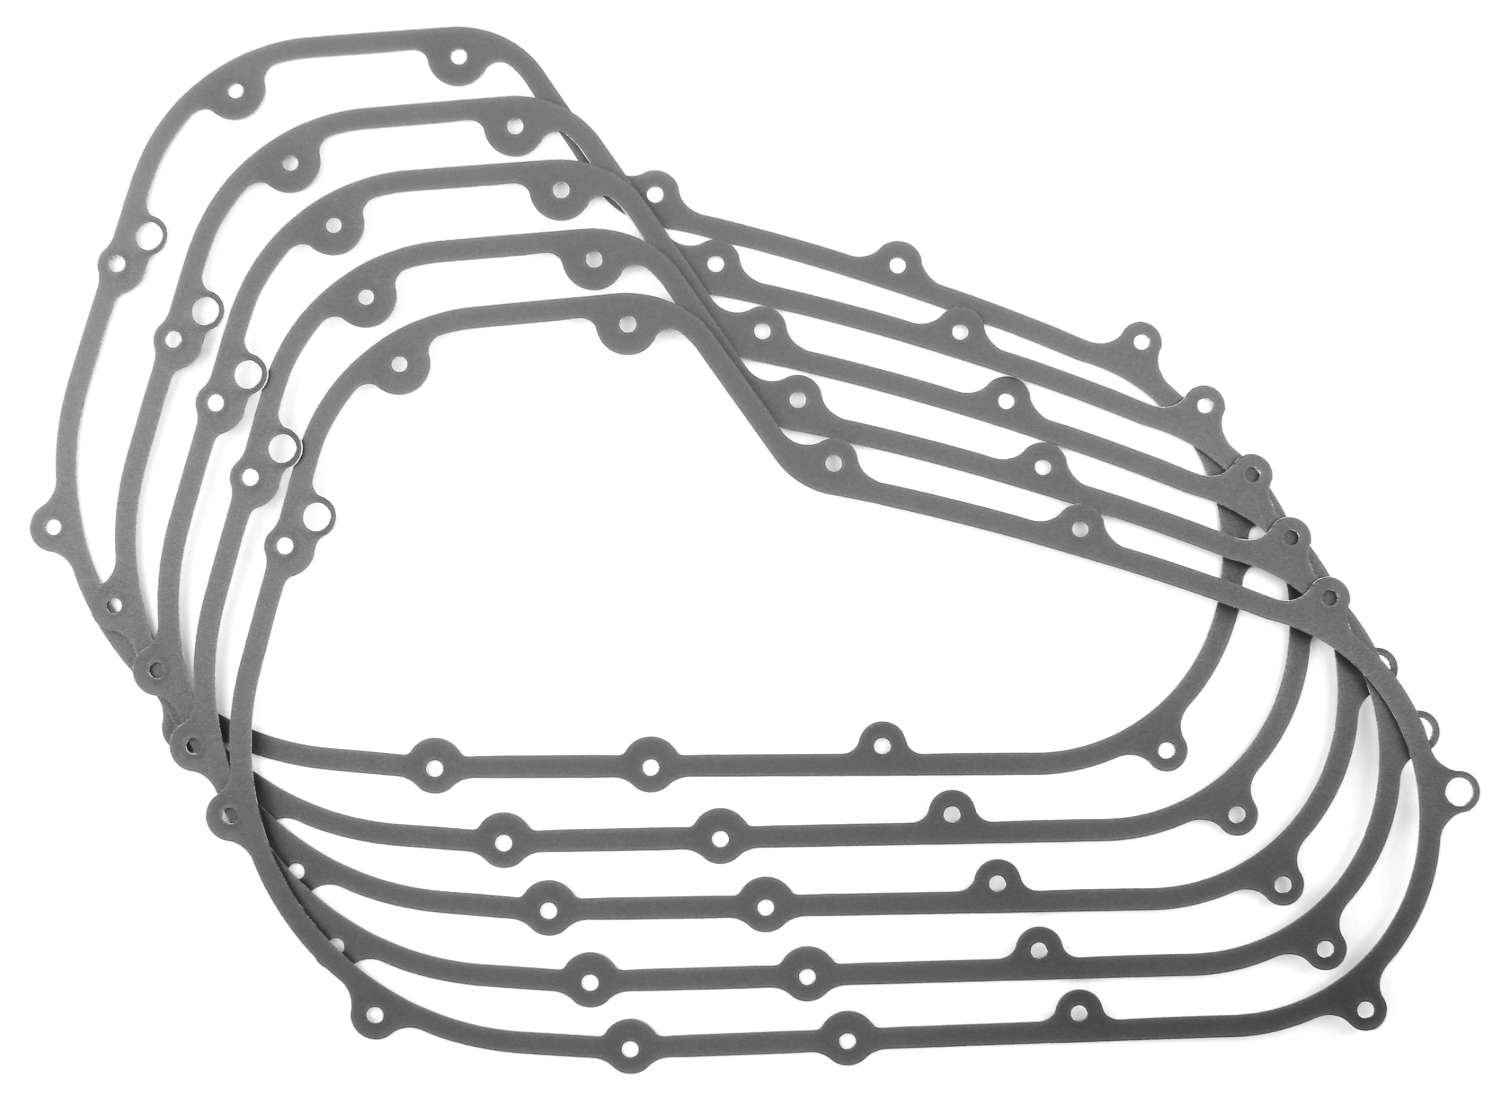 Twin Power Primary Gasket - 5pk. C9179F5TP by Twin Power